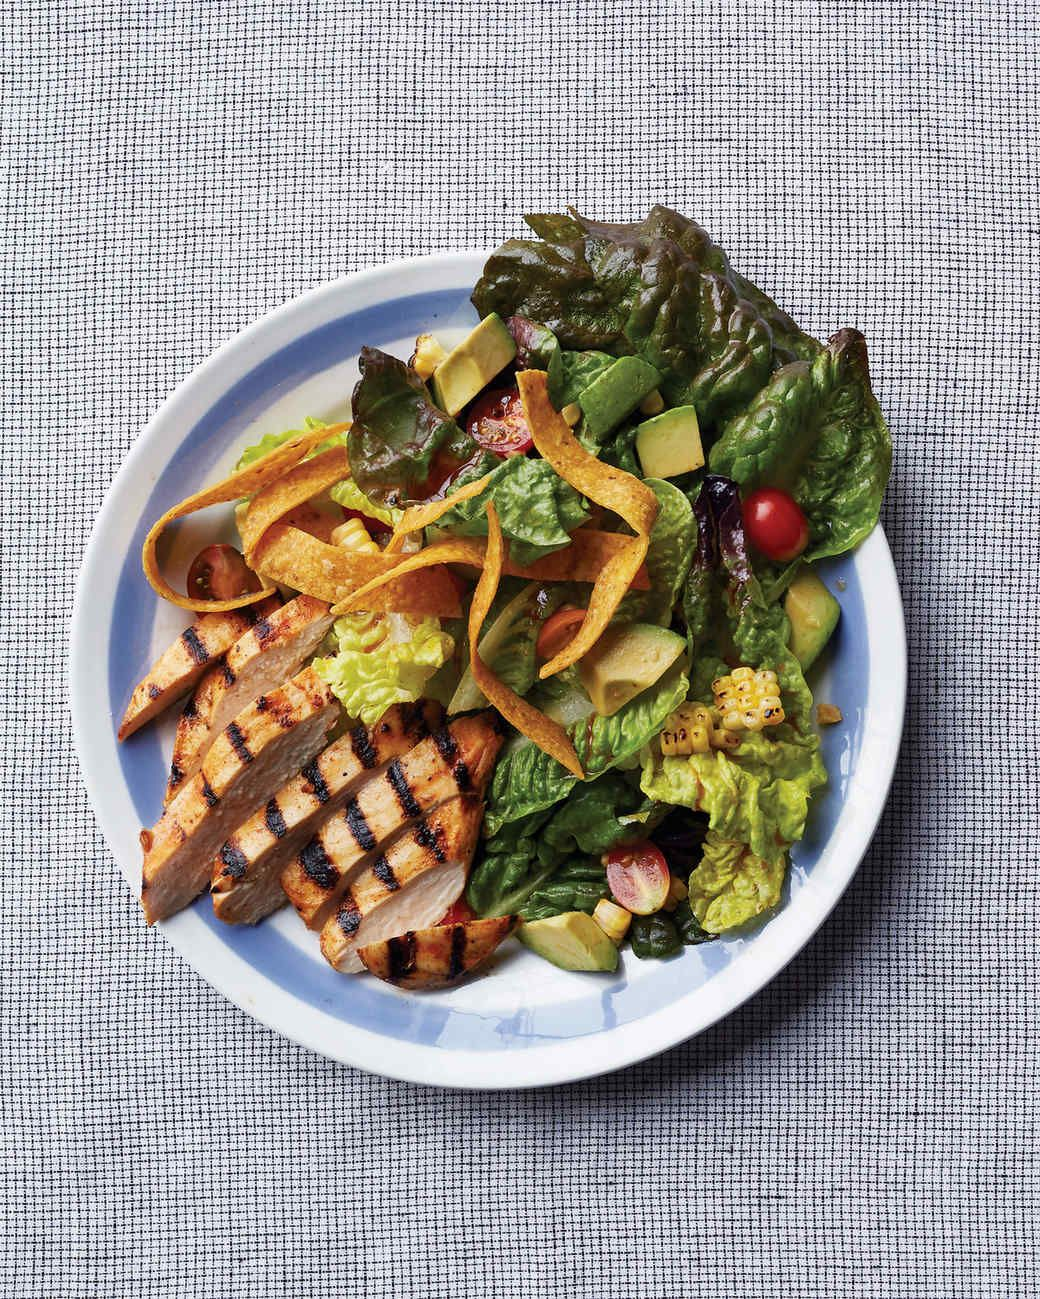 Barbecued-Chicken Salad | Martha Stewart Living - Toss flame-kissed chicken and corn with lettuce, avocado, cherry tomatoes, and tortilla chips for this smoky, satisfying salad.